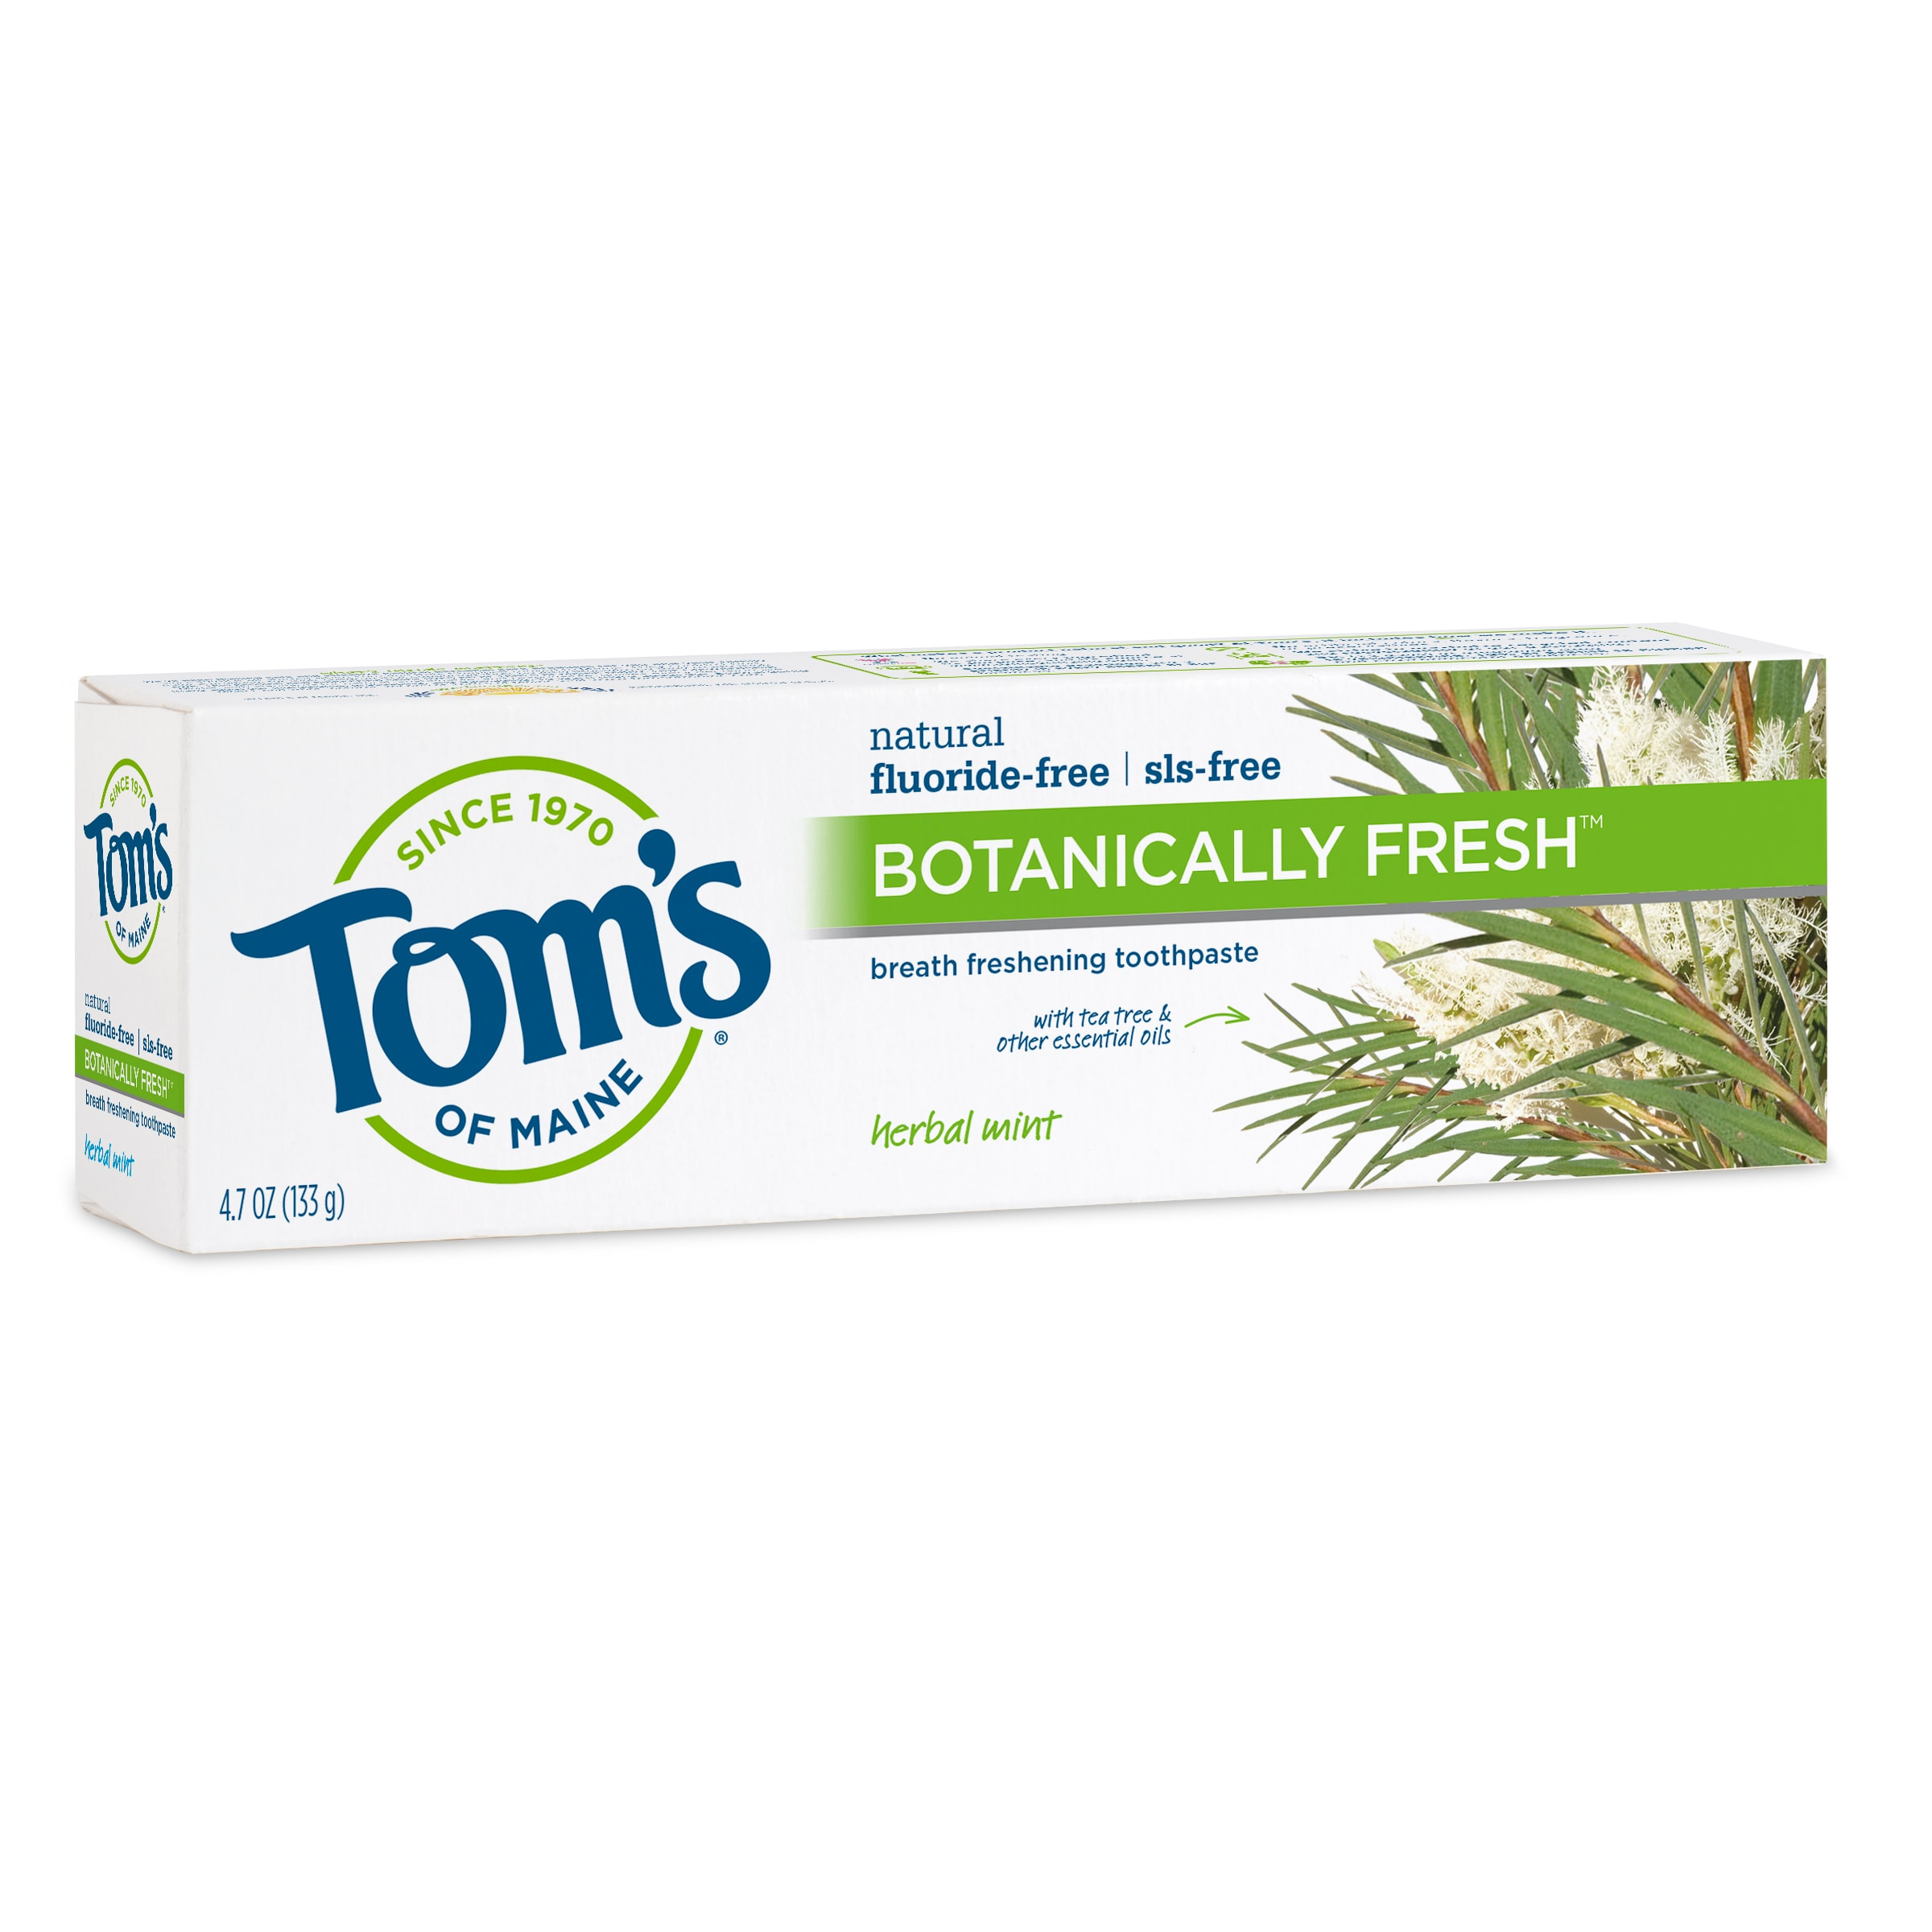 Botanically Fresh™ Toothpaste